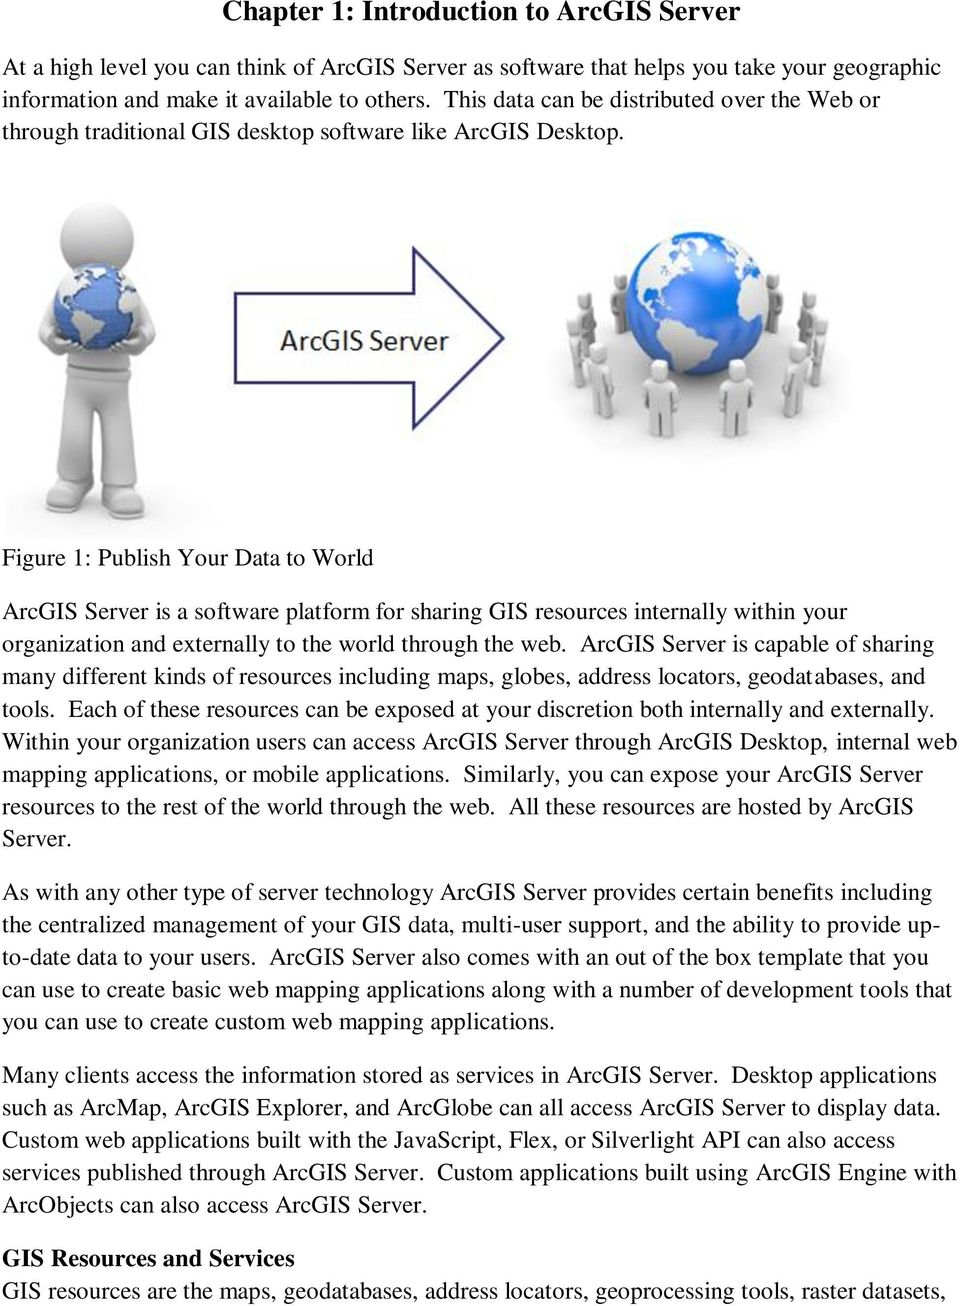 Figure 1: Publish Your Data to World ArcGIS Server is a software platform for sharing GIS resources internally within your organization and externally to the world through the web.